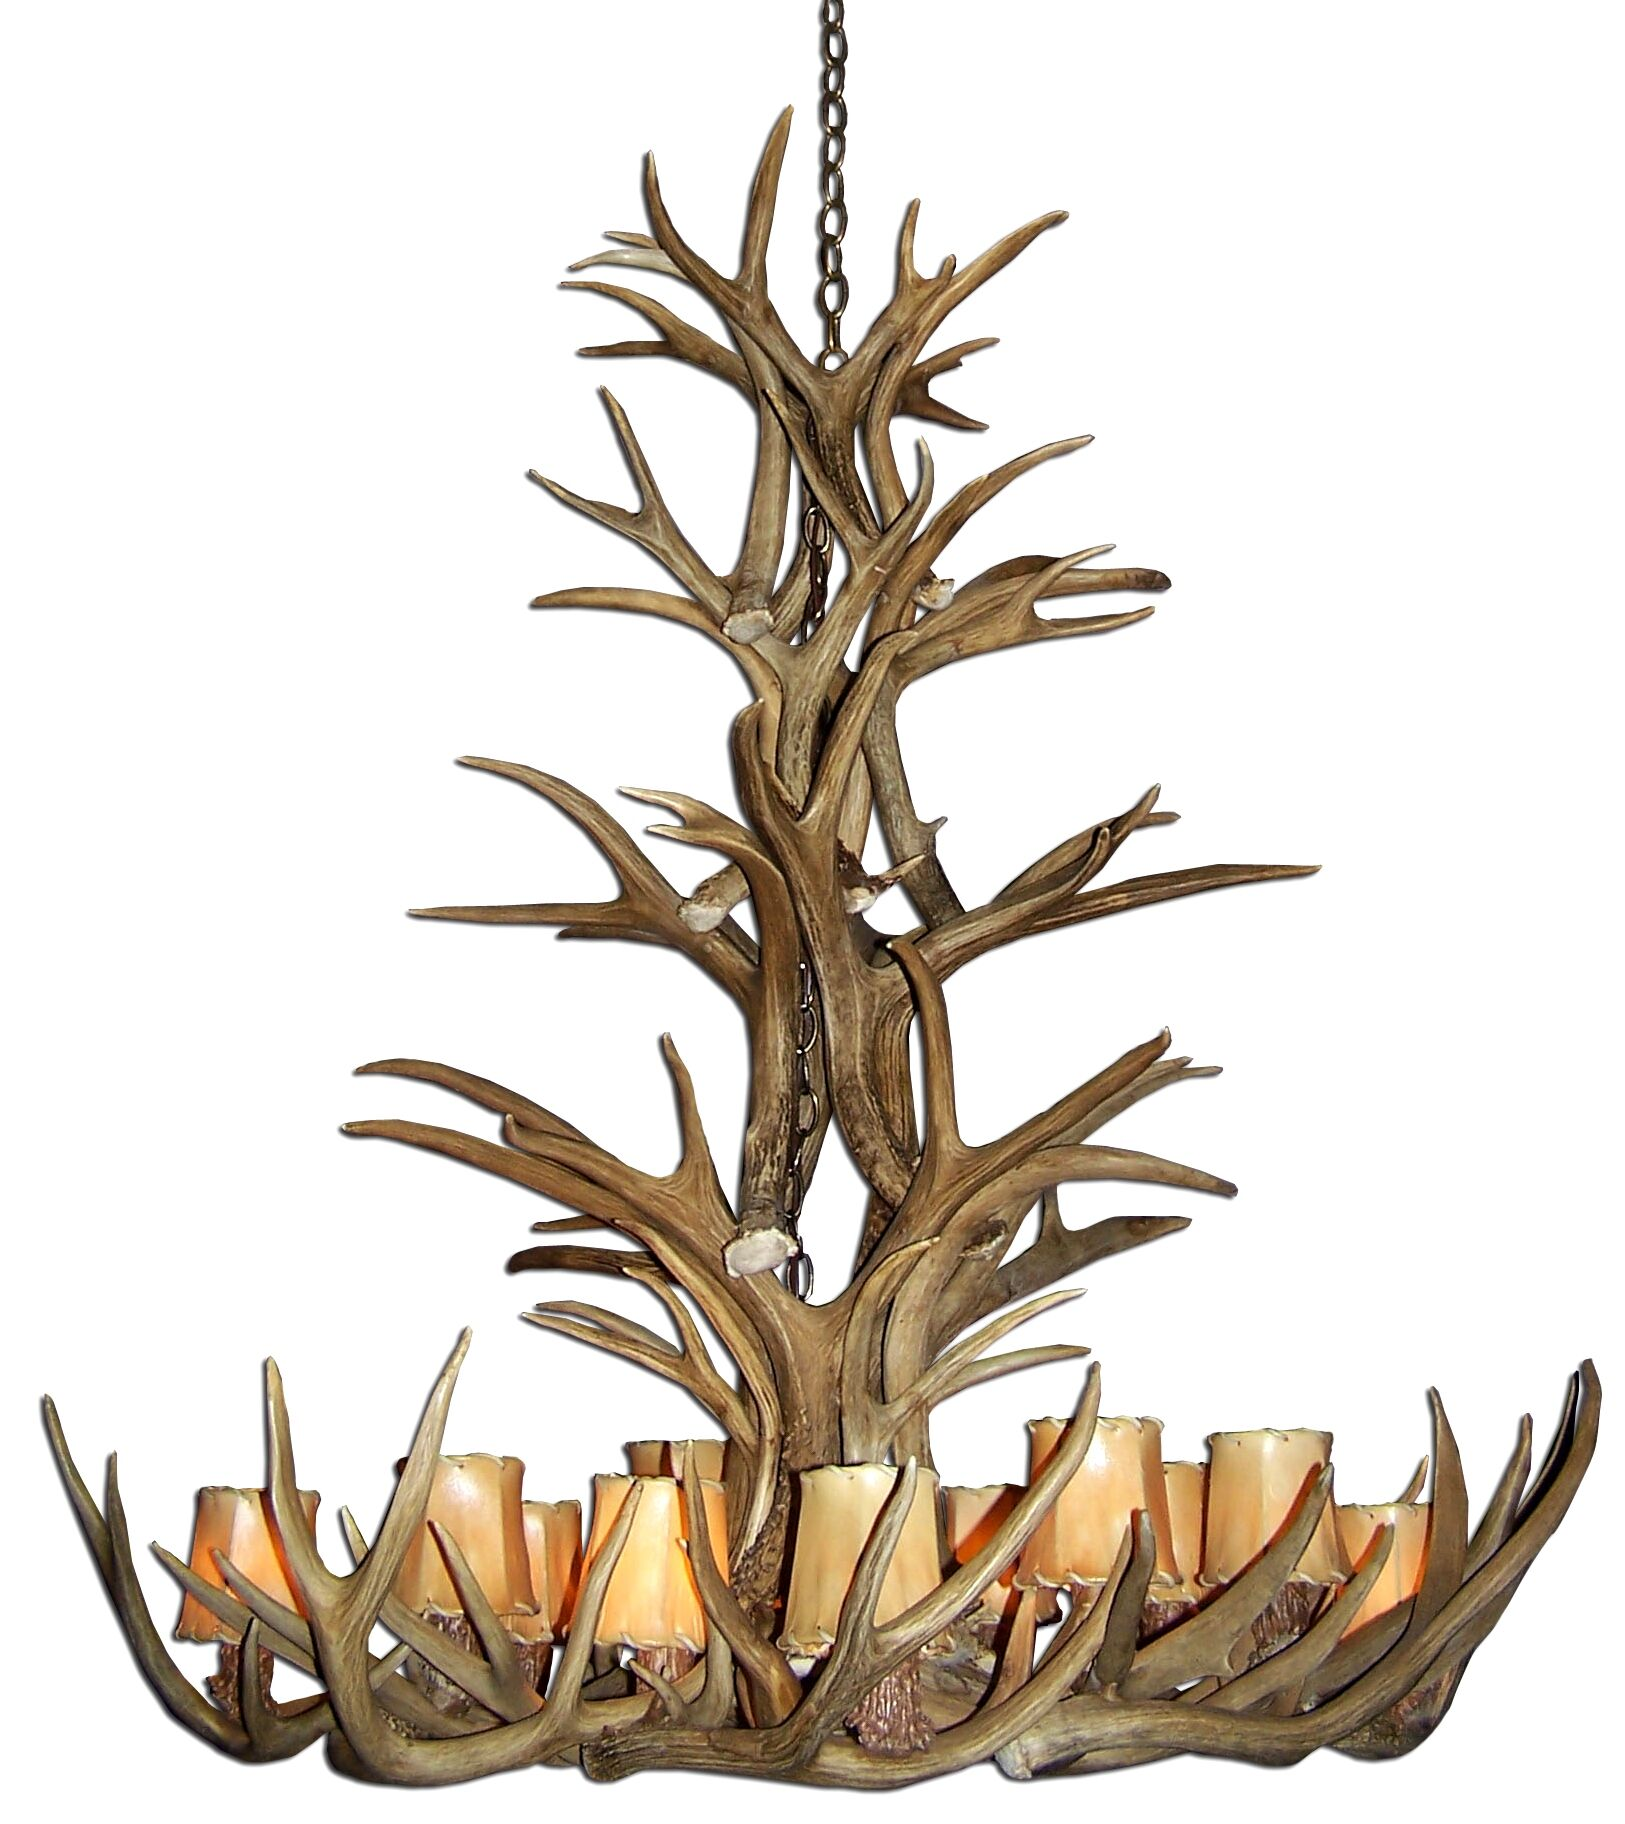 Doliya Antler Mule Deer 12-Light We have associated to option Chandelier Finish: Black/Sunbleached, Shade Included: No, Shade Color: No Shade